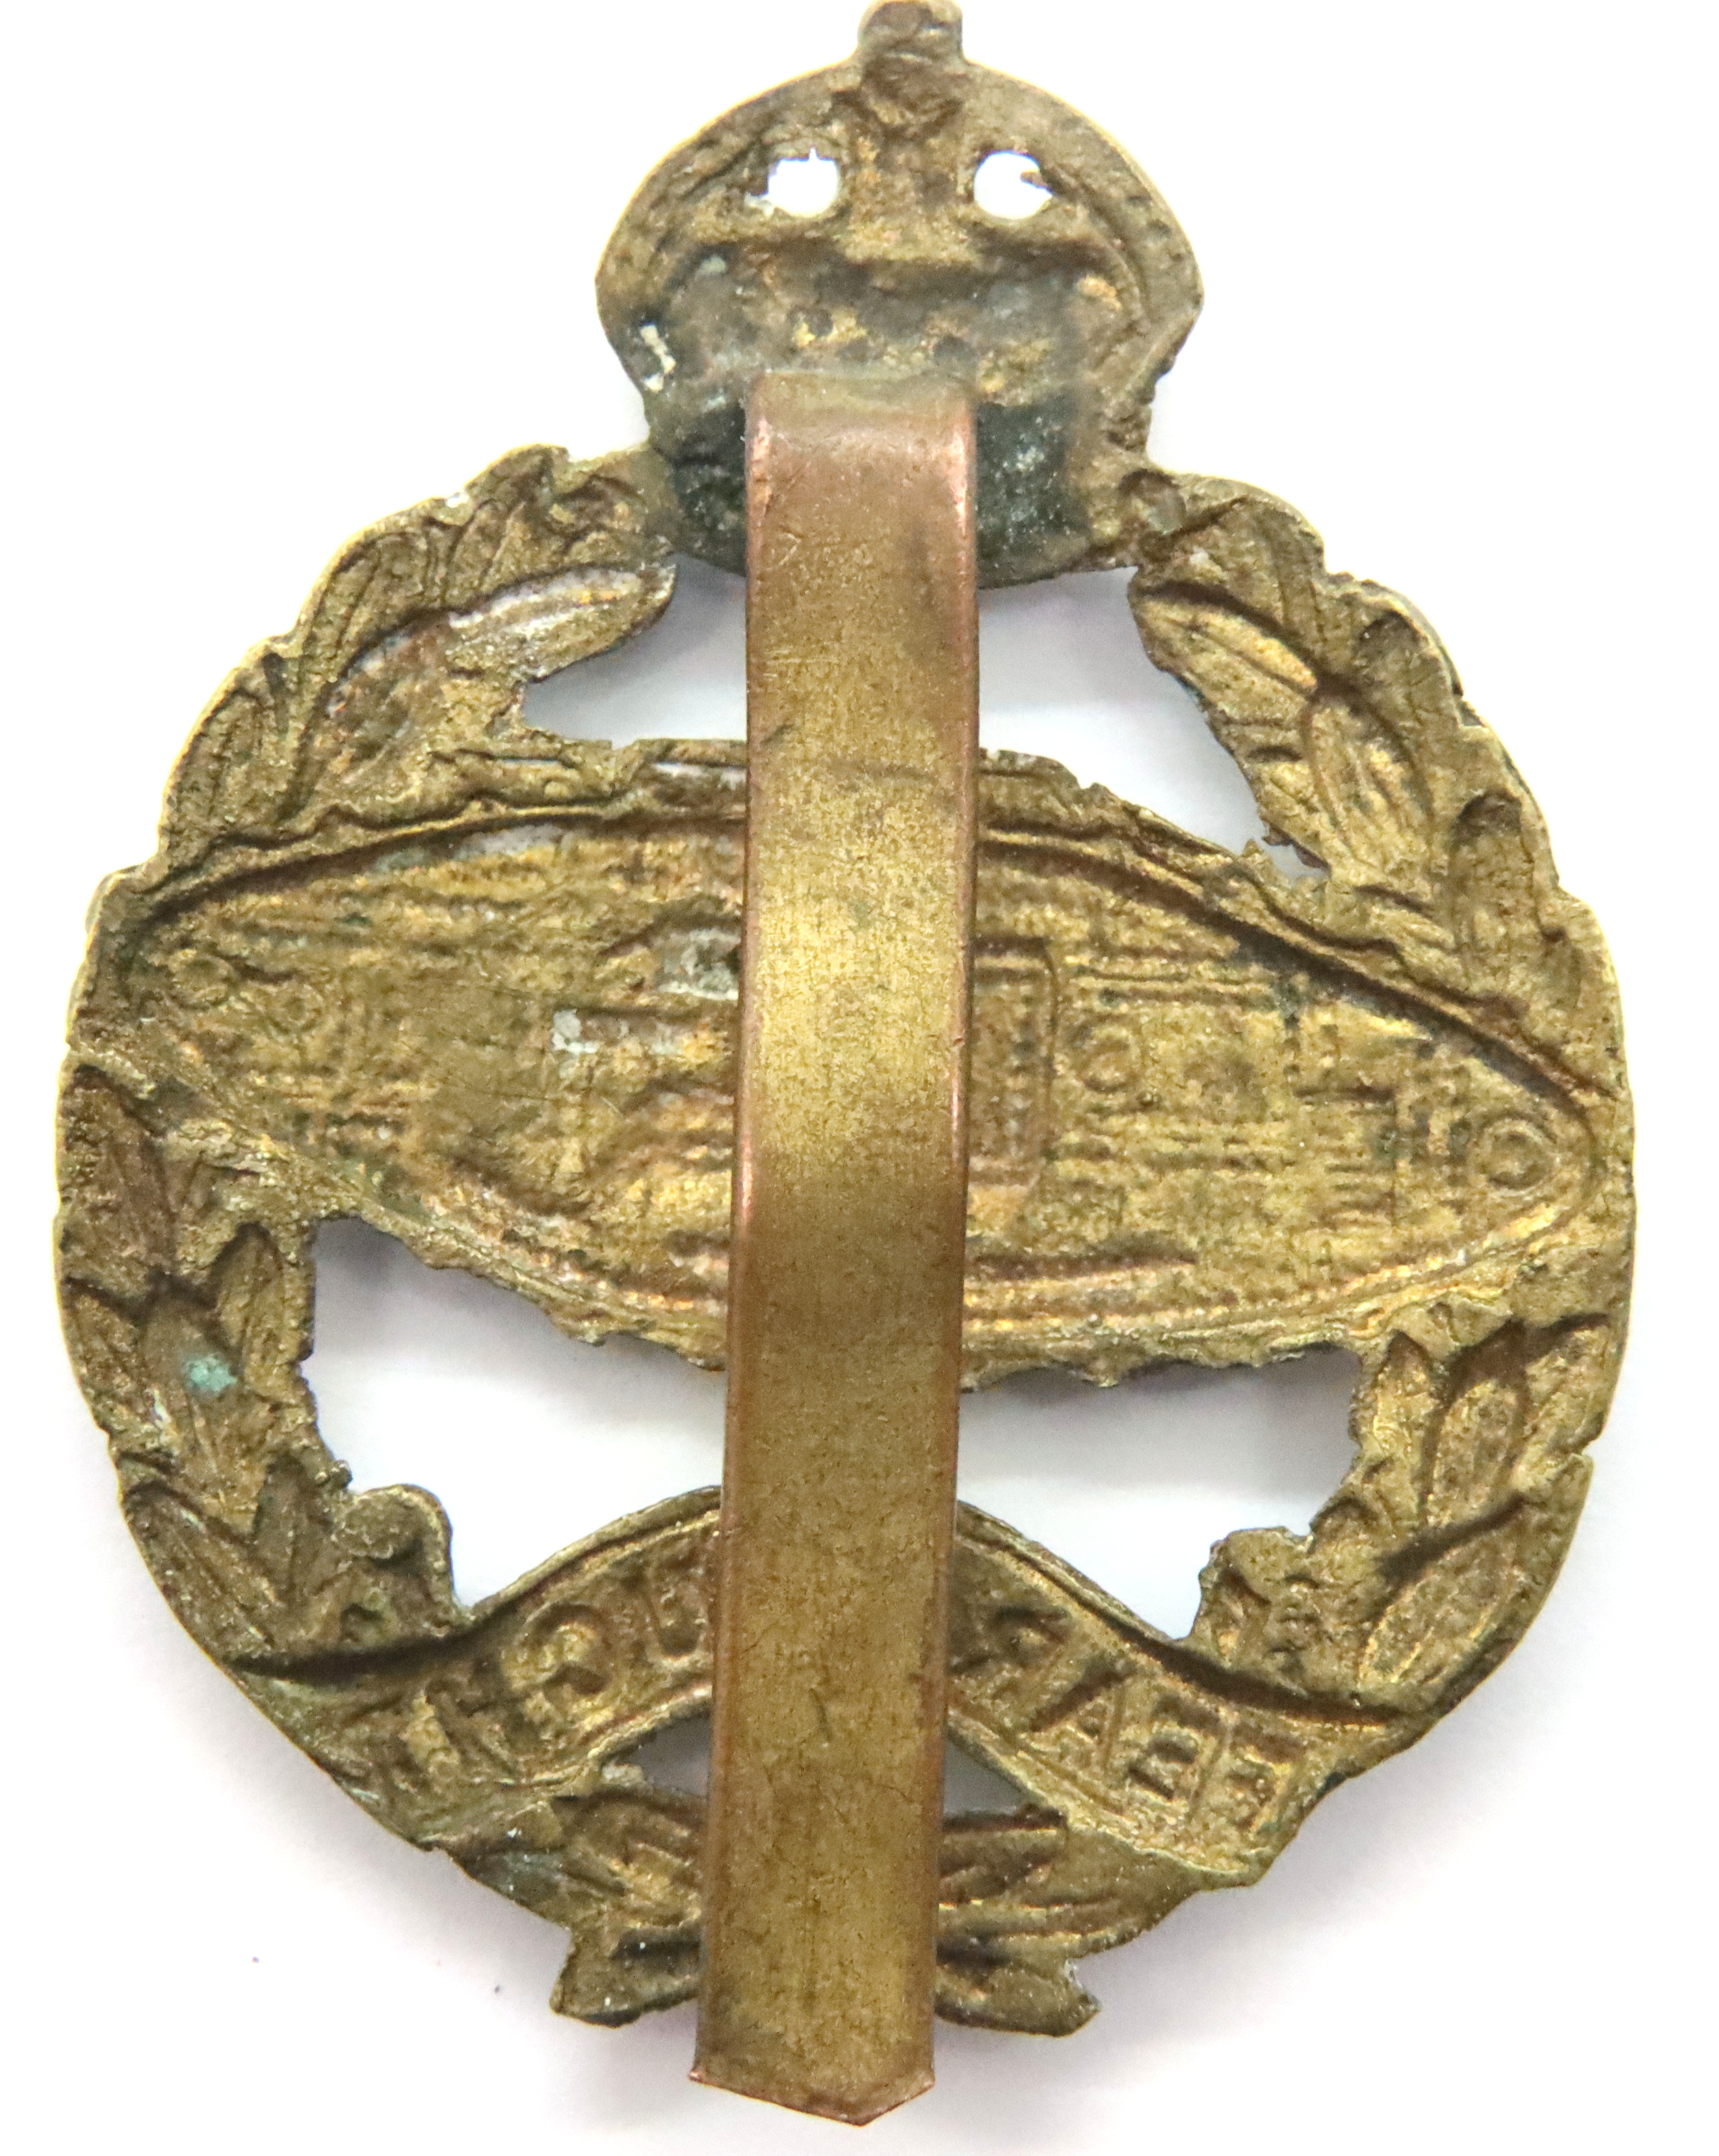 Rare 1924 Issue Royal Tank Regiment Cap Badge. (Tank facing the wrong way) This is the brass variant - Image 2 of 2